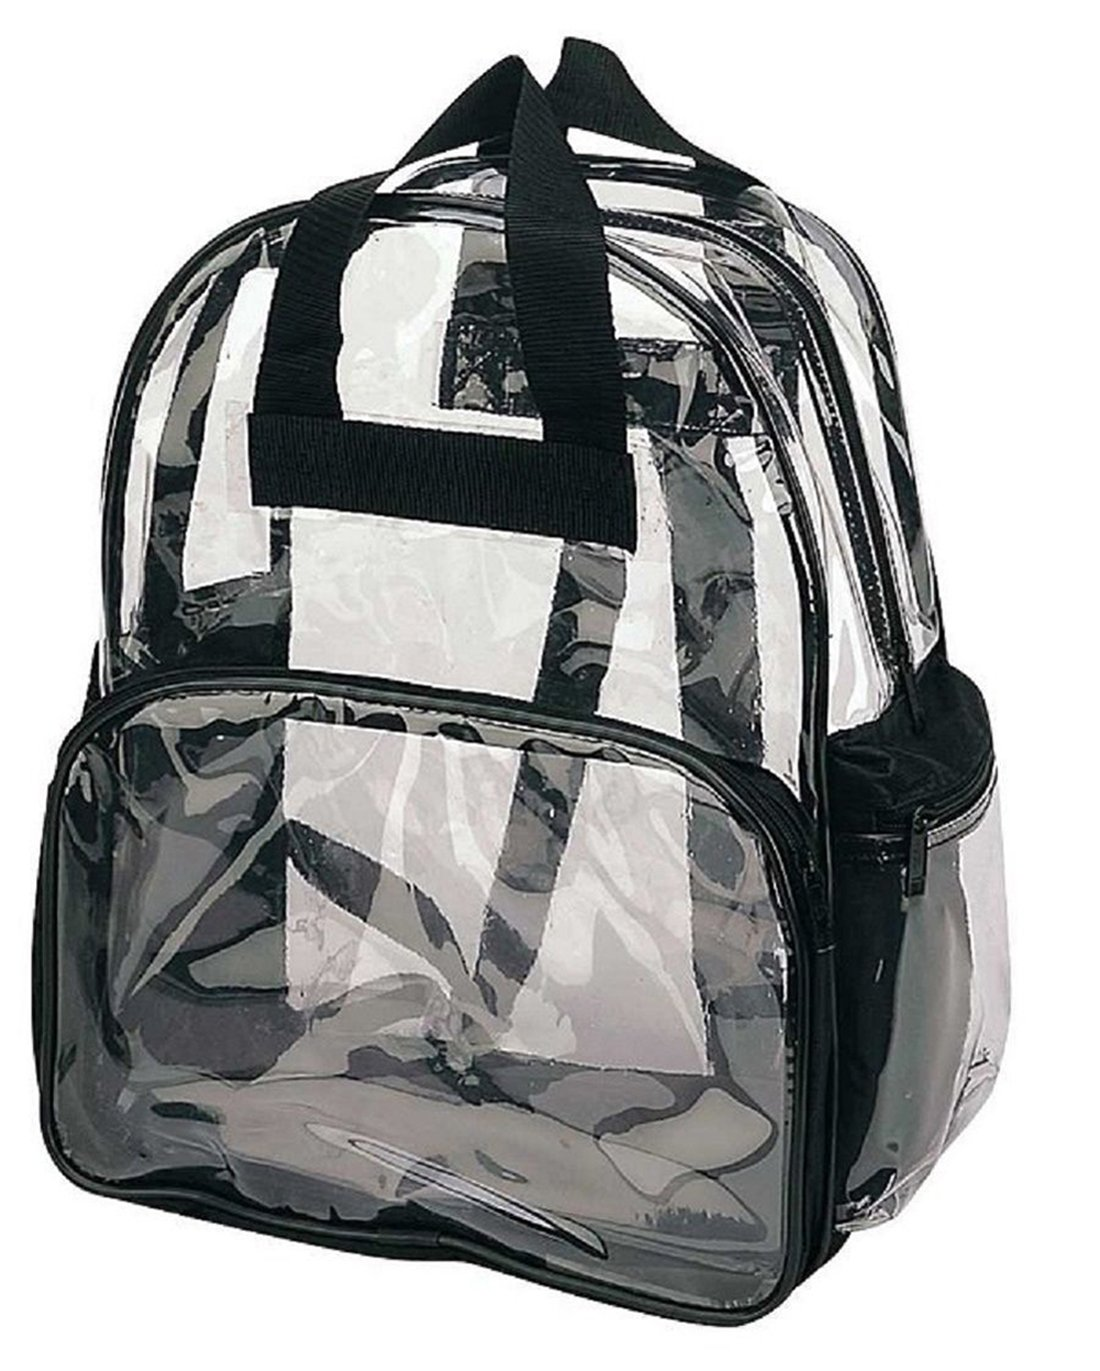 Backpack Clear School Bag Transparent Pvc New See Plastic